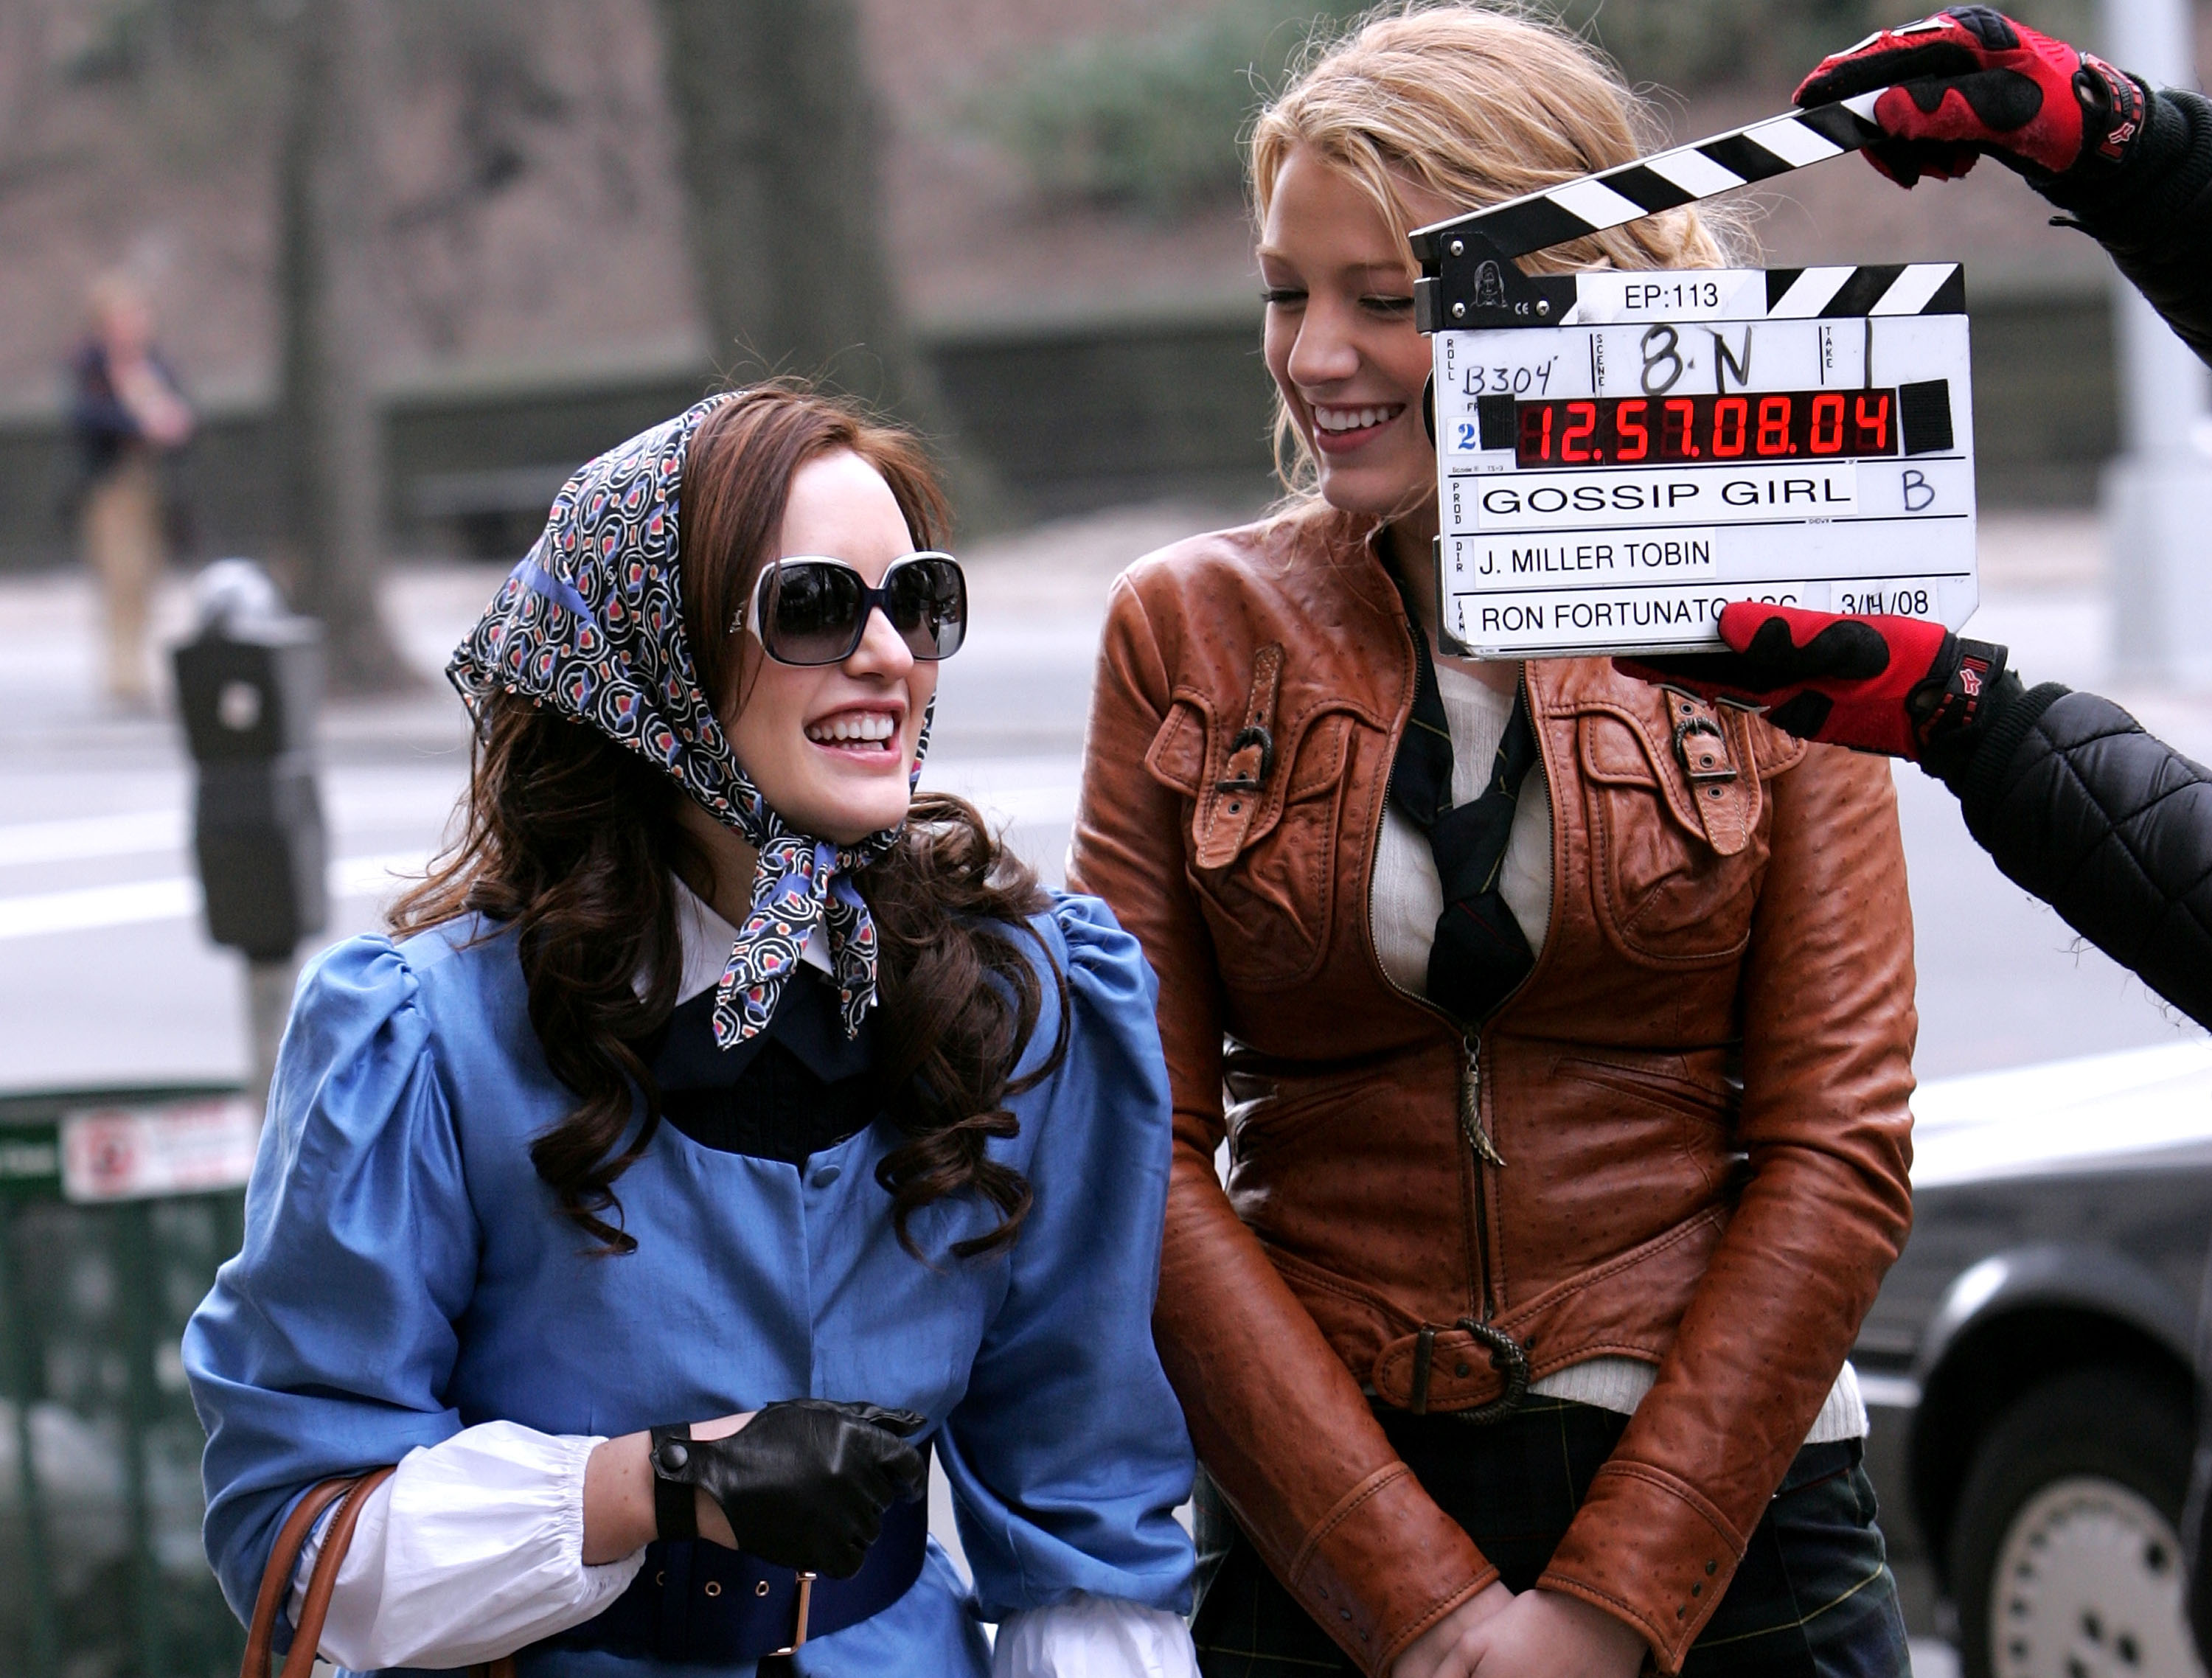 Despite wearing a disguise, Leighton Meester sported a bright smile that gave her away during a March 2008 shoot